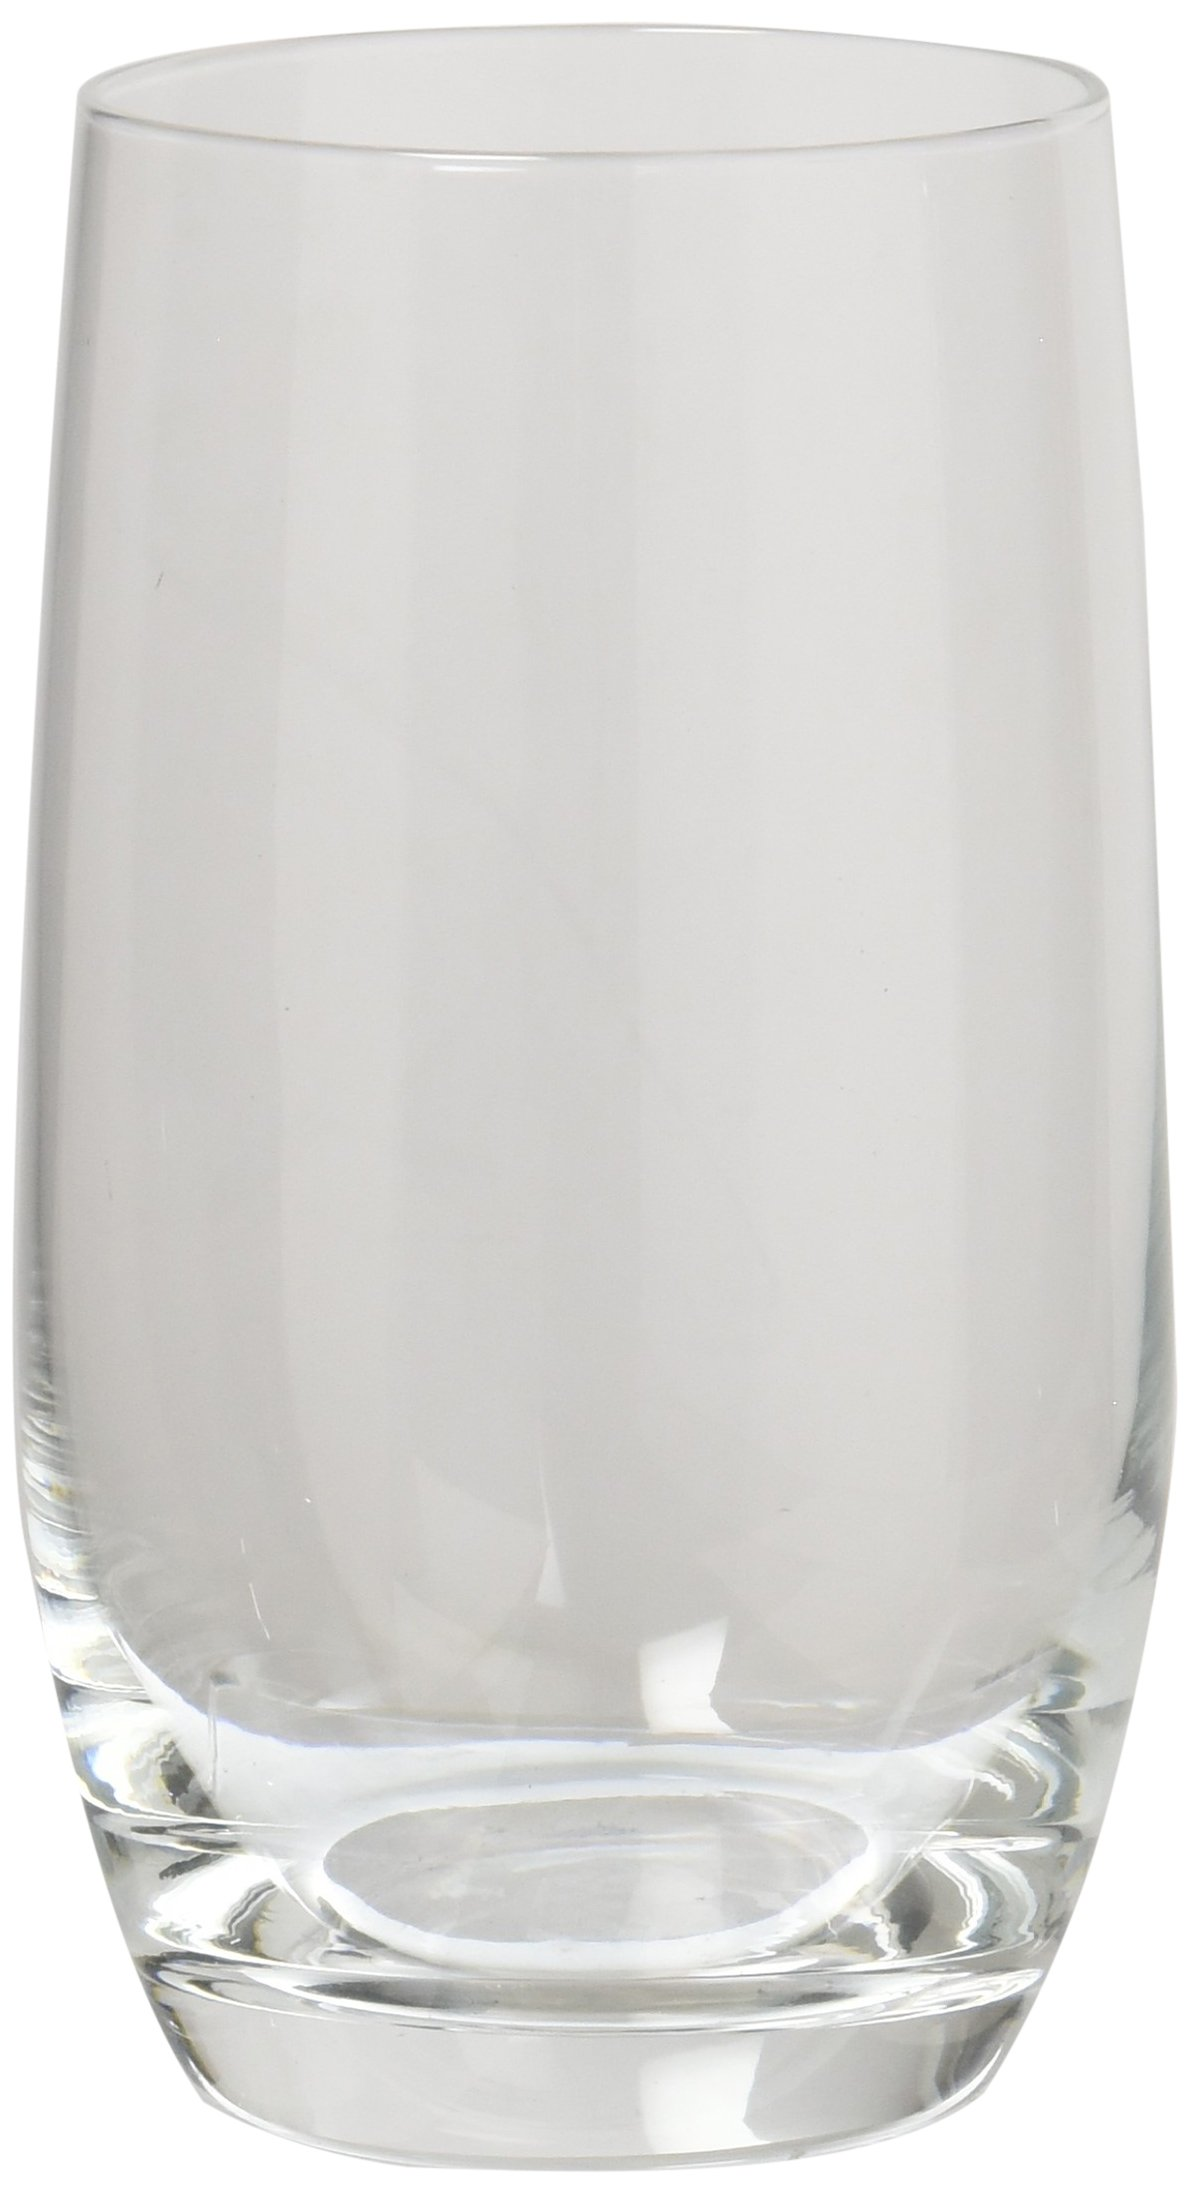 ZWILLING J.A. HENCKELS 36300-841 6 Piece Predicat Water Glass Set, 10.8 oz